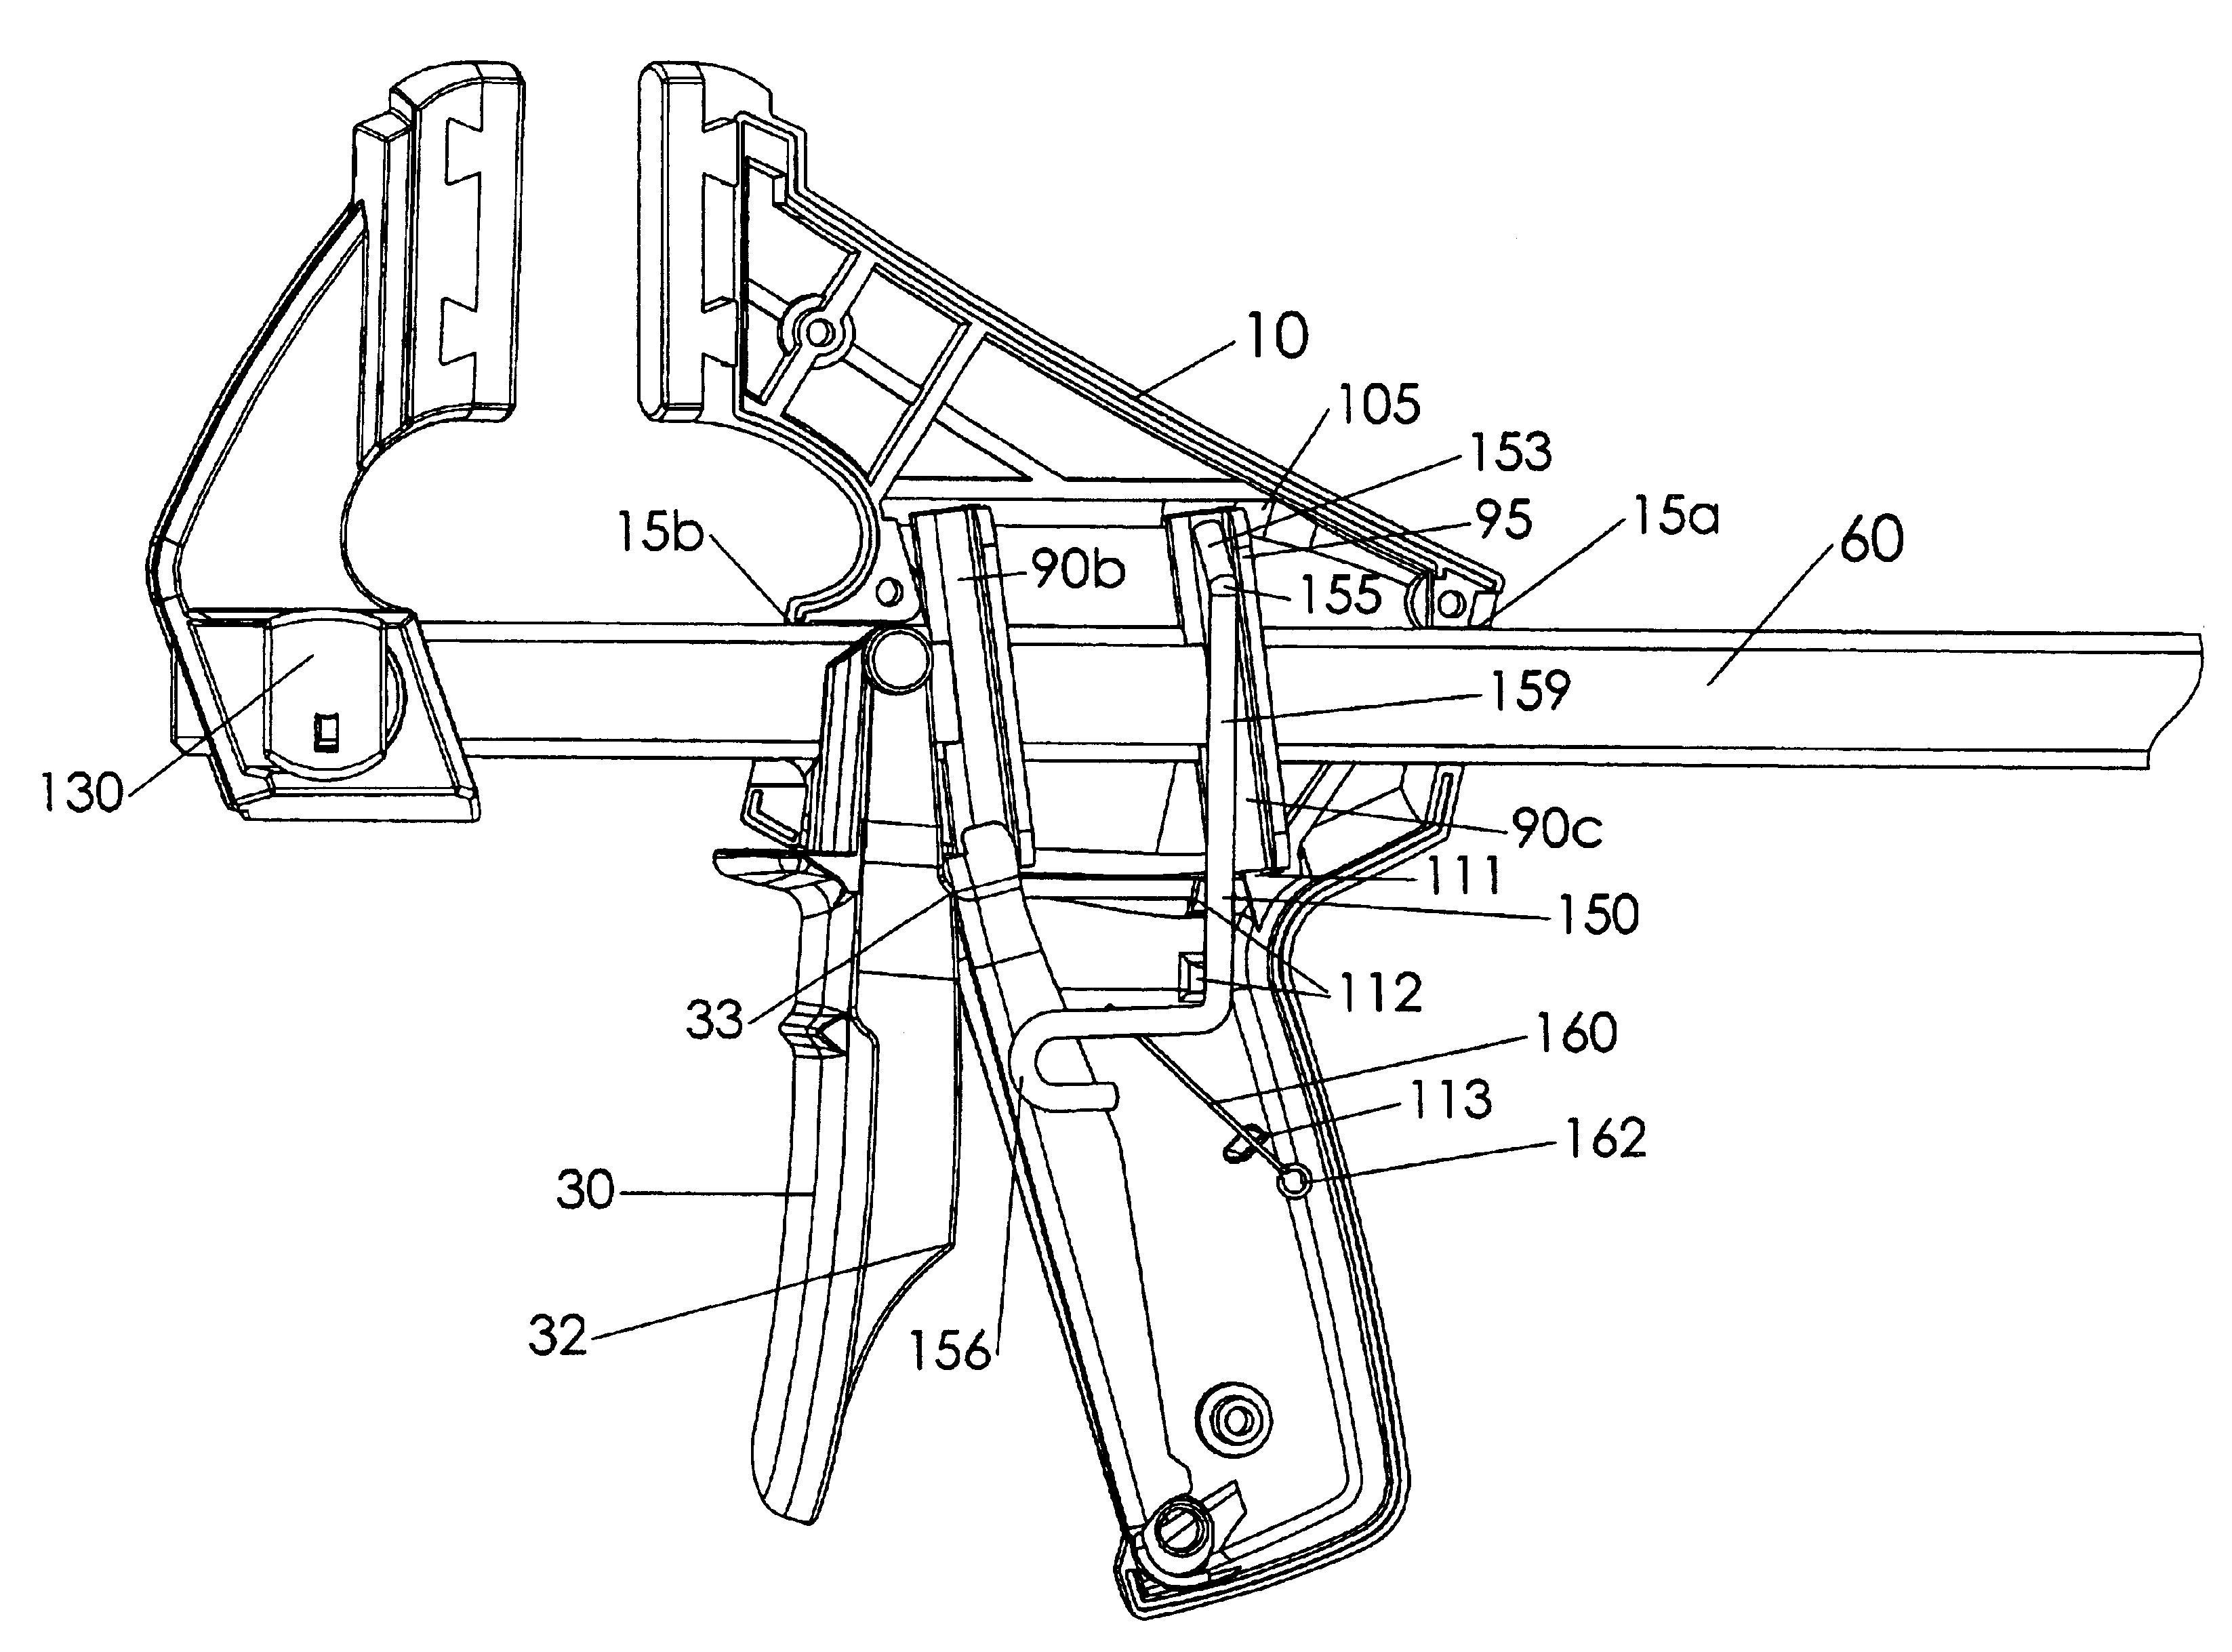 patent us6929253 - quick action bar clamp with improved stiffness and release button